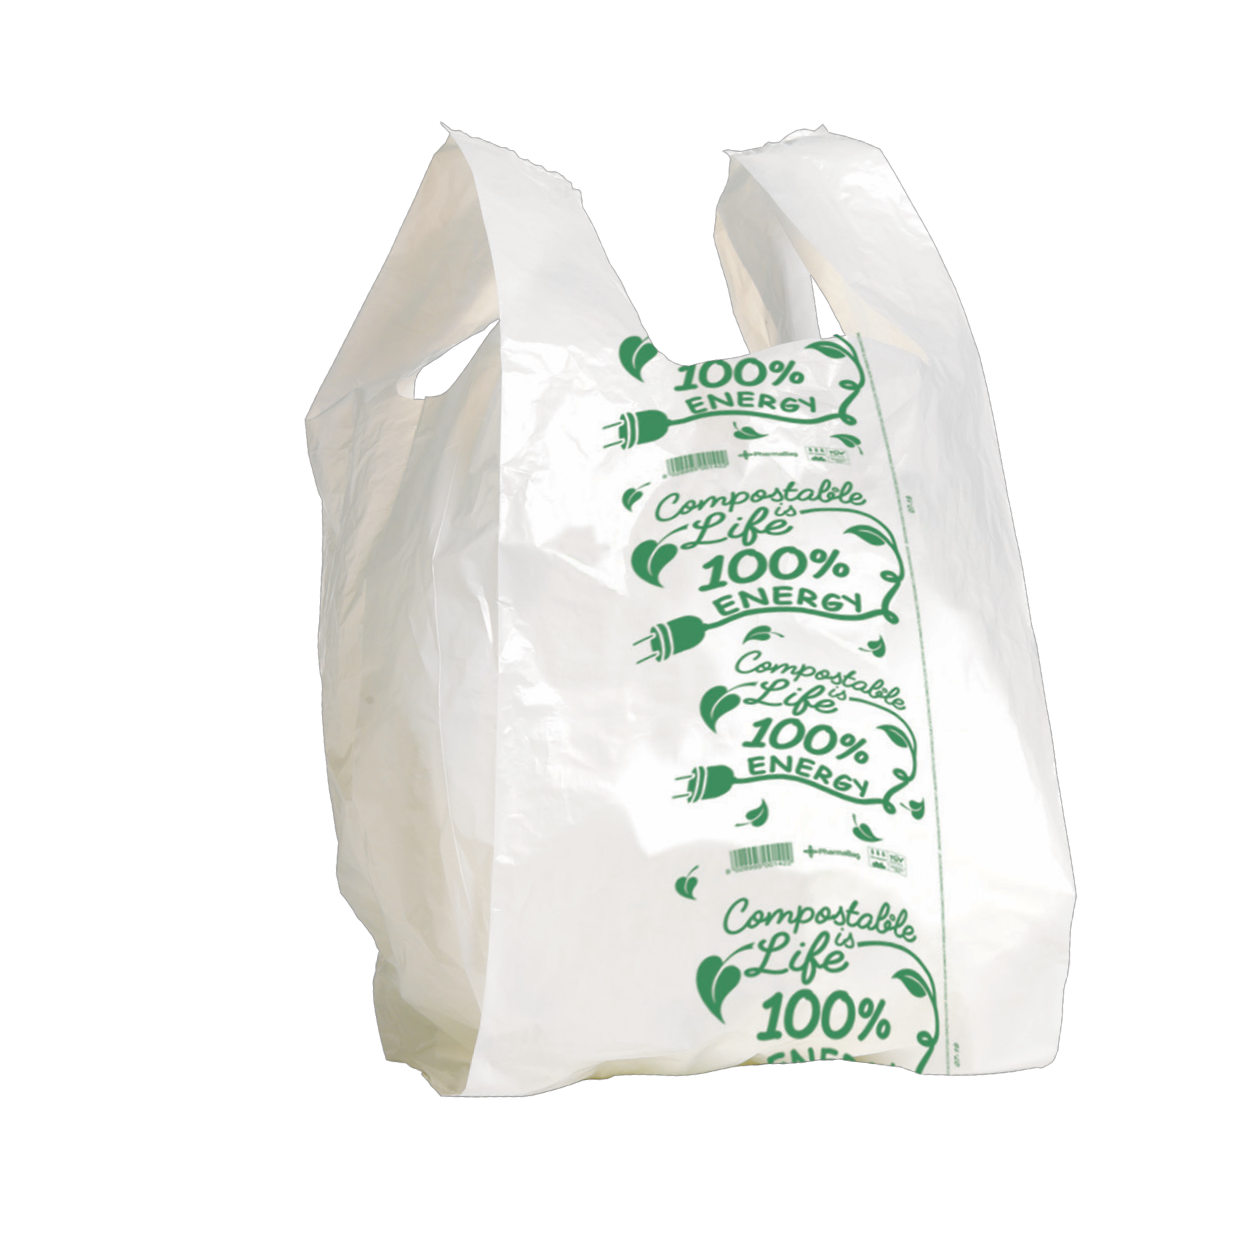 MINI Shopper bianco compostabile formato shopper: 24+6,5+6,5x40 cm.